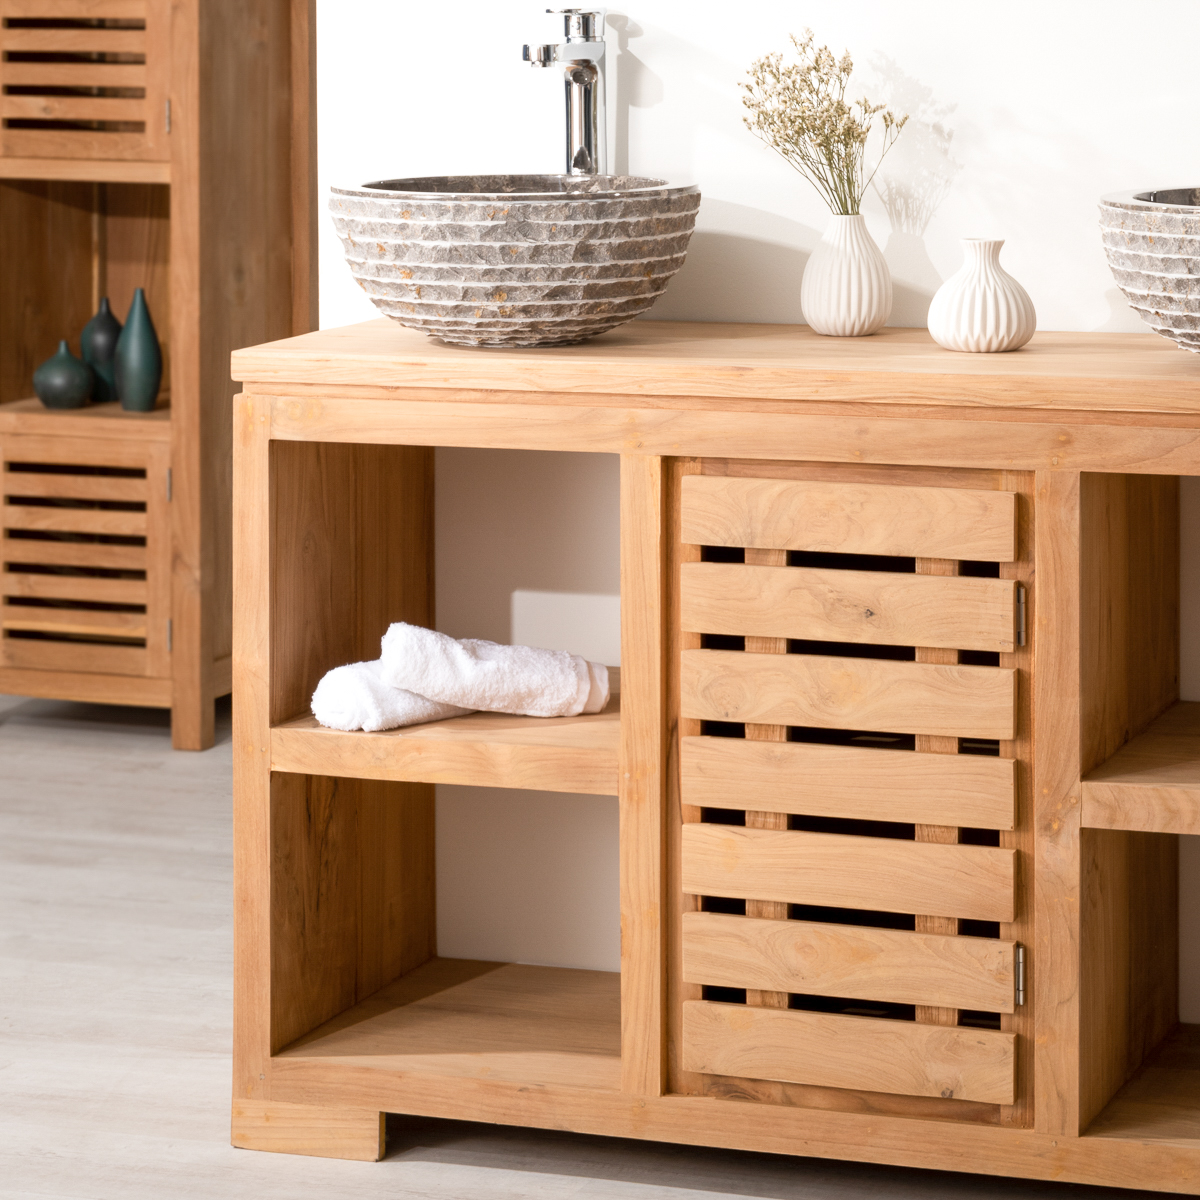 meuble sous vasque double vasque en bois teck massif. Black Bedroom Furniture Sets. Home Design Ideas